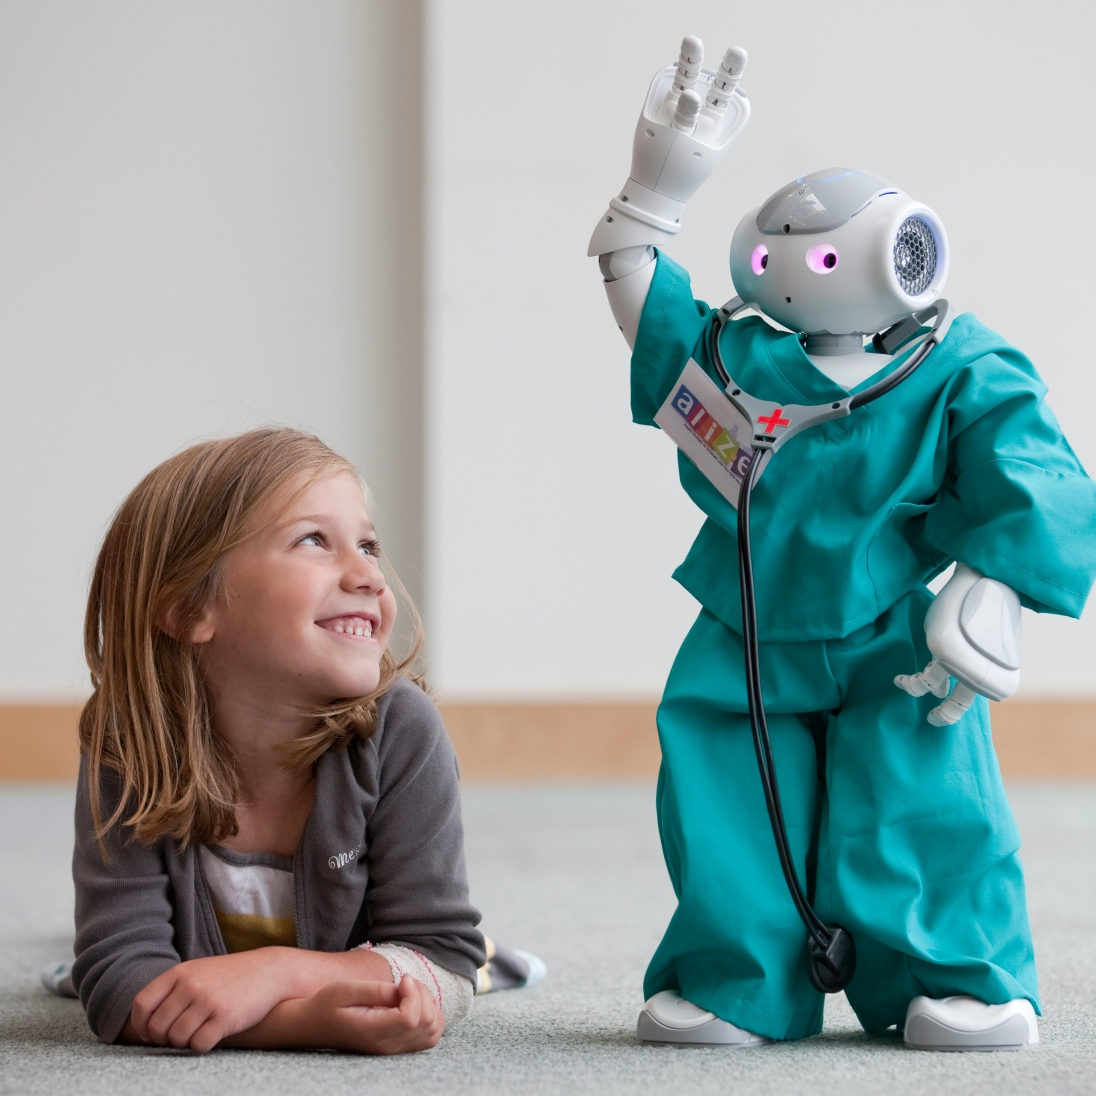 The ALIZ-E project studied how social robots could support children during a stay in hospital.